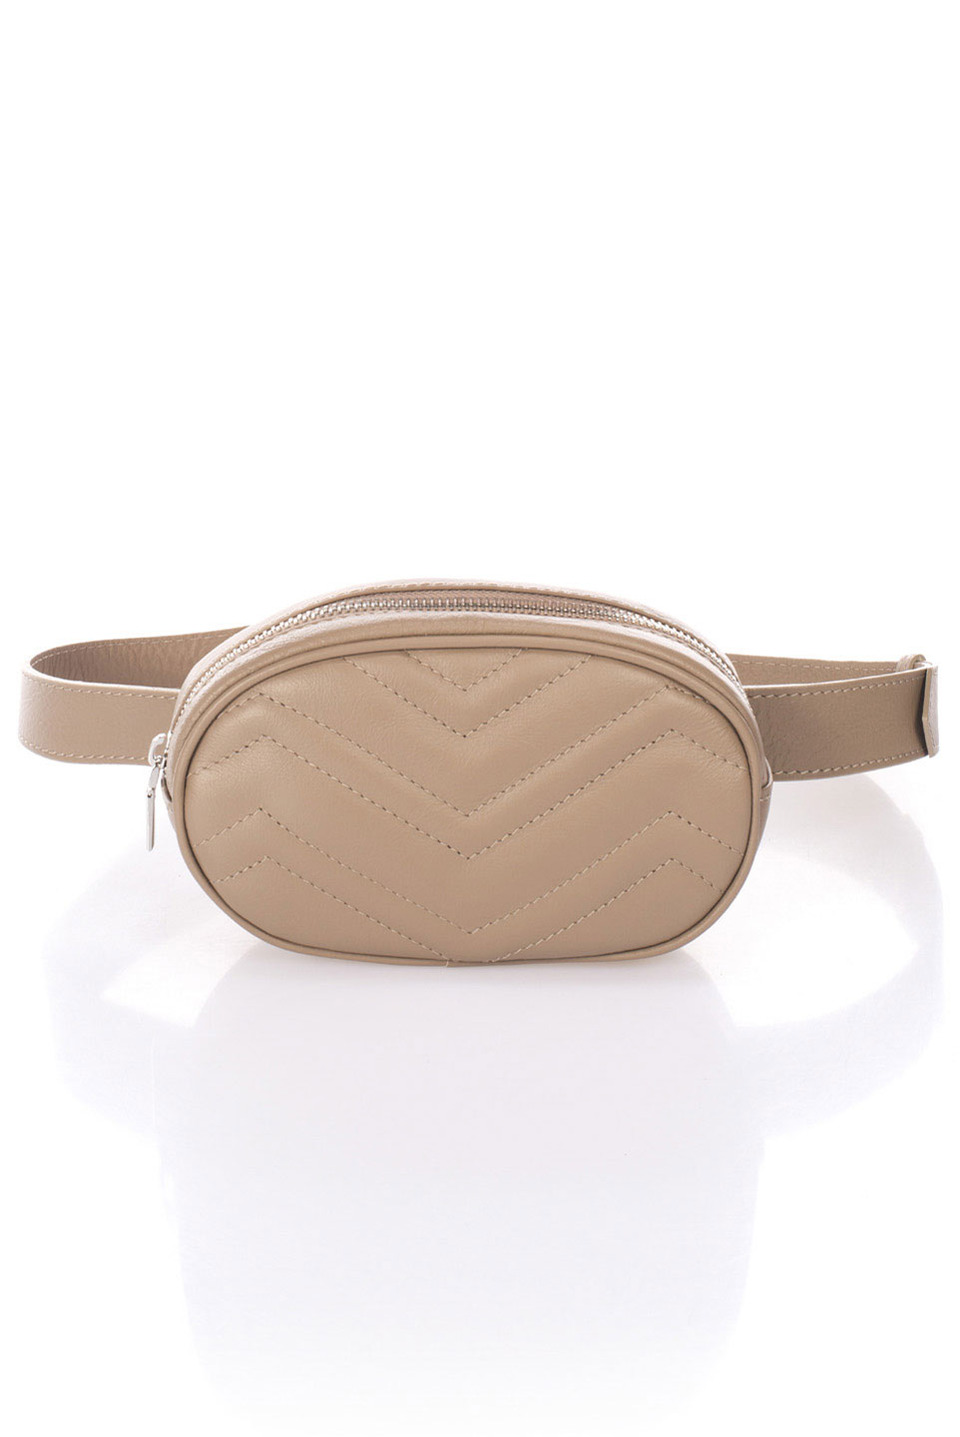 Flair Pouch Bag in Taupe